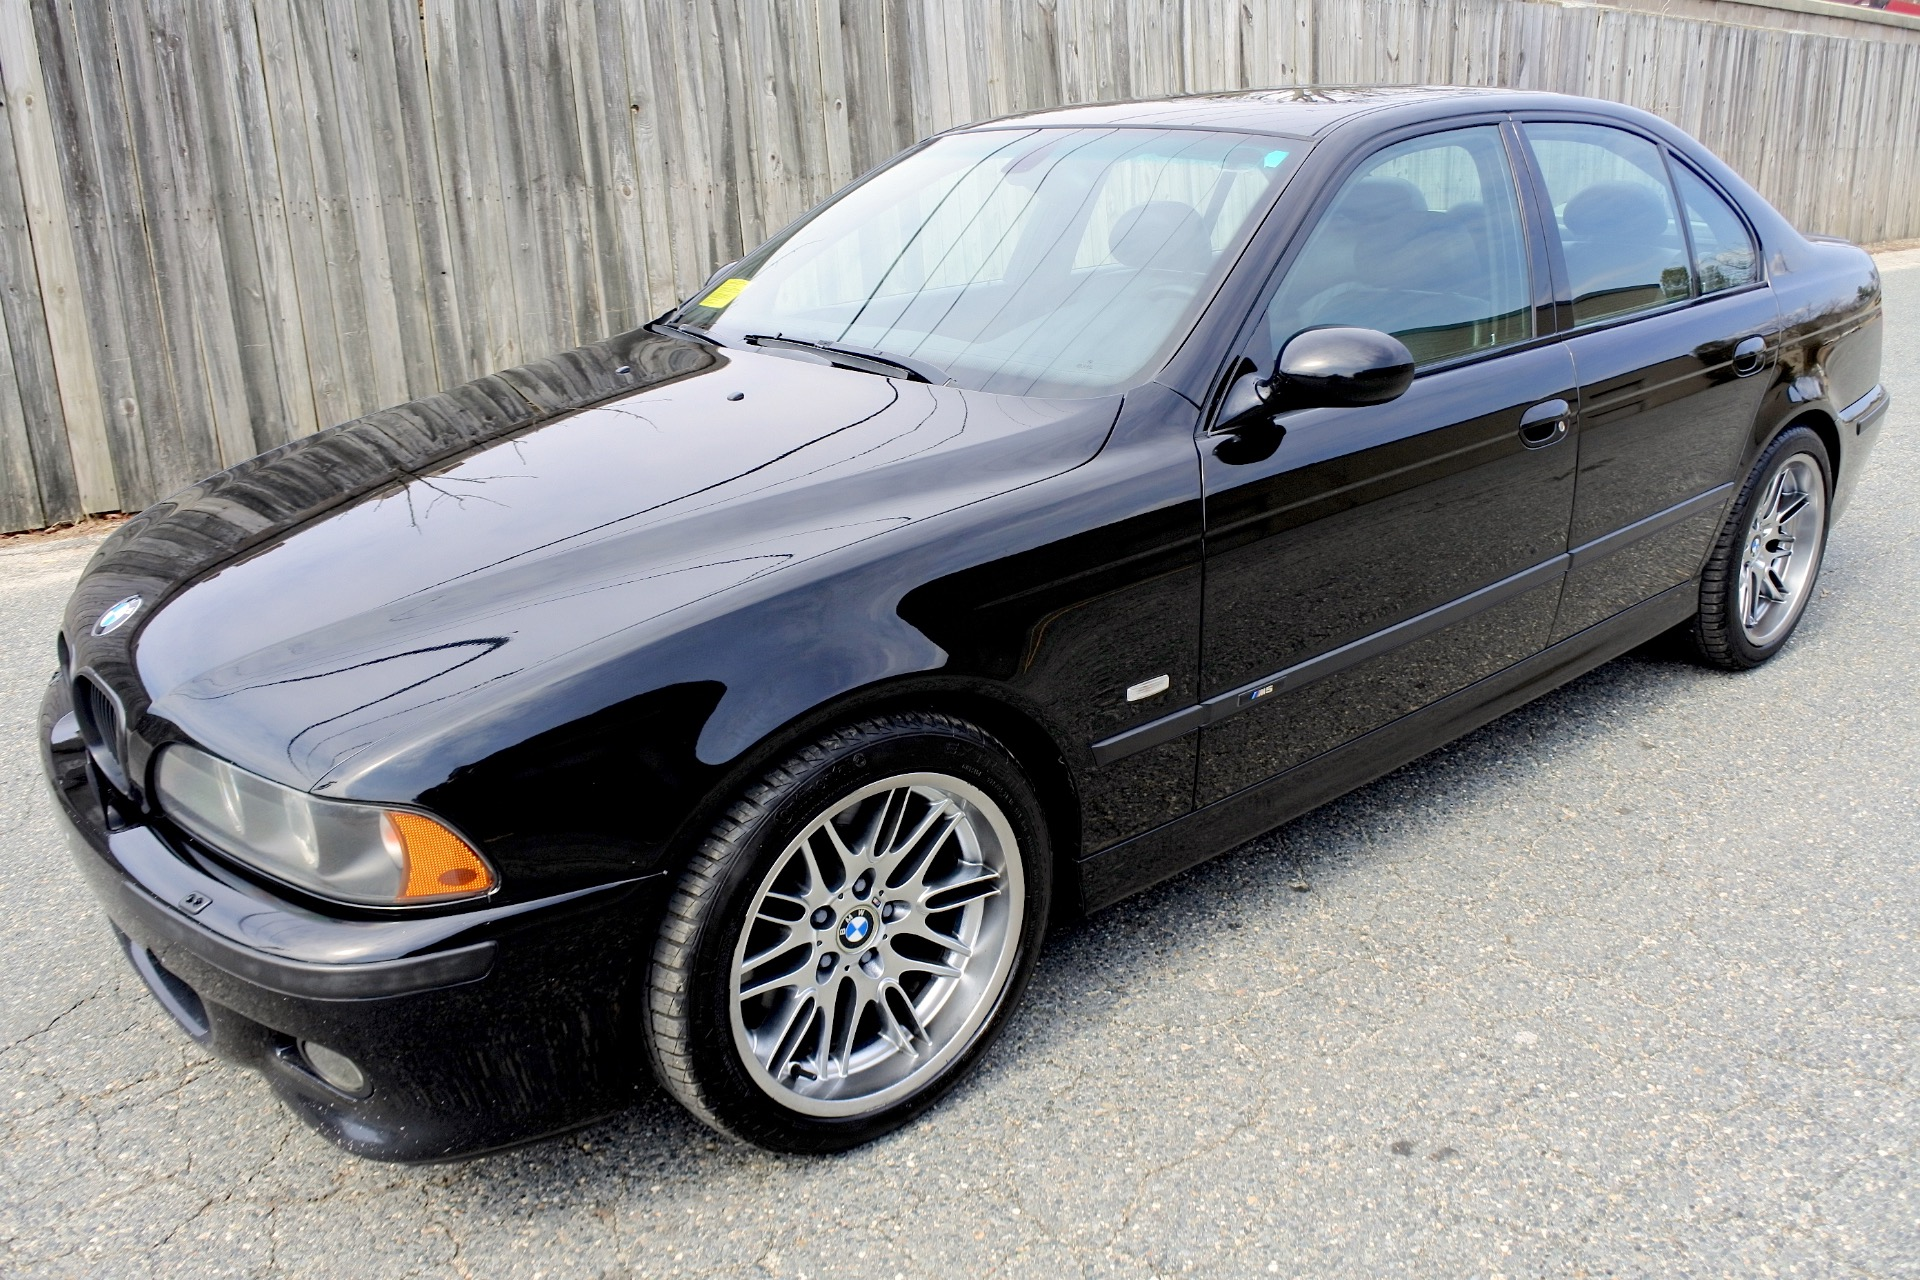 Used 2001 BMW 5 Series M5 4dr Sdn 6-Spd Manual Used 2001 BMW 5 Series M5 4dr Sdn 6-Spd Manual for sale  at Metro West Motorcars LLC in Shrewsbury MA 1